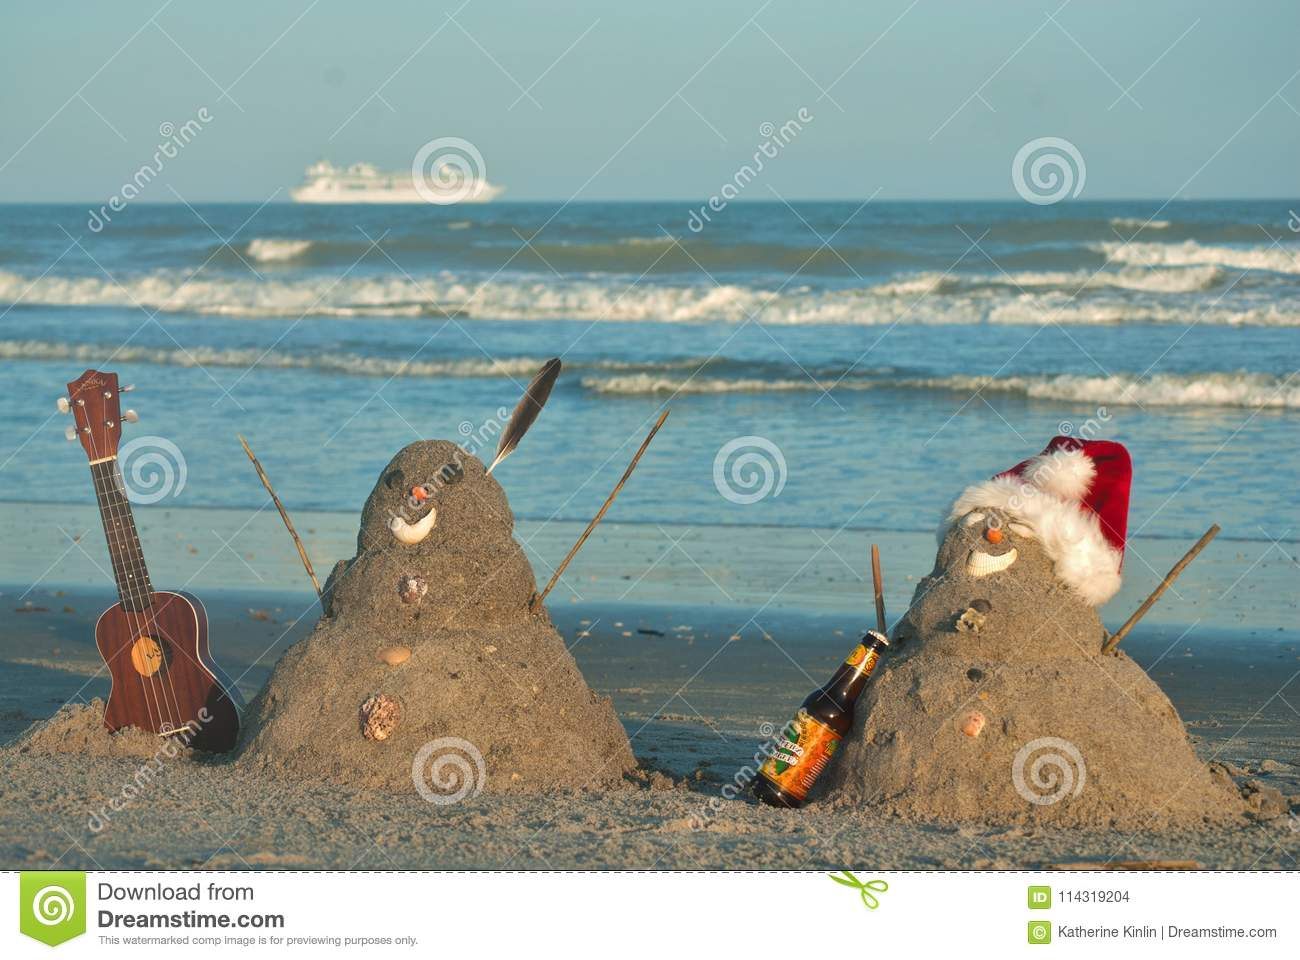 Christmas In Florida Images.Tropical Florida Beach Vacation Christmas Stock Photo